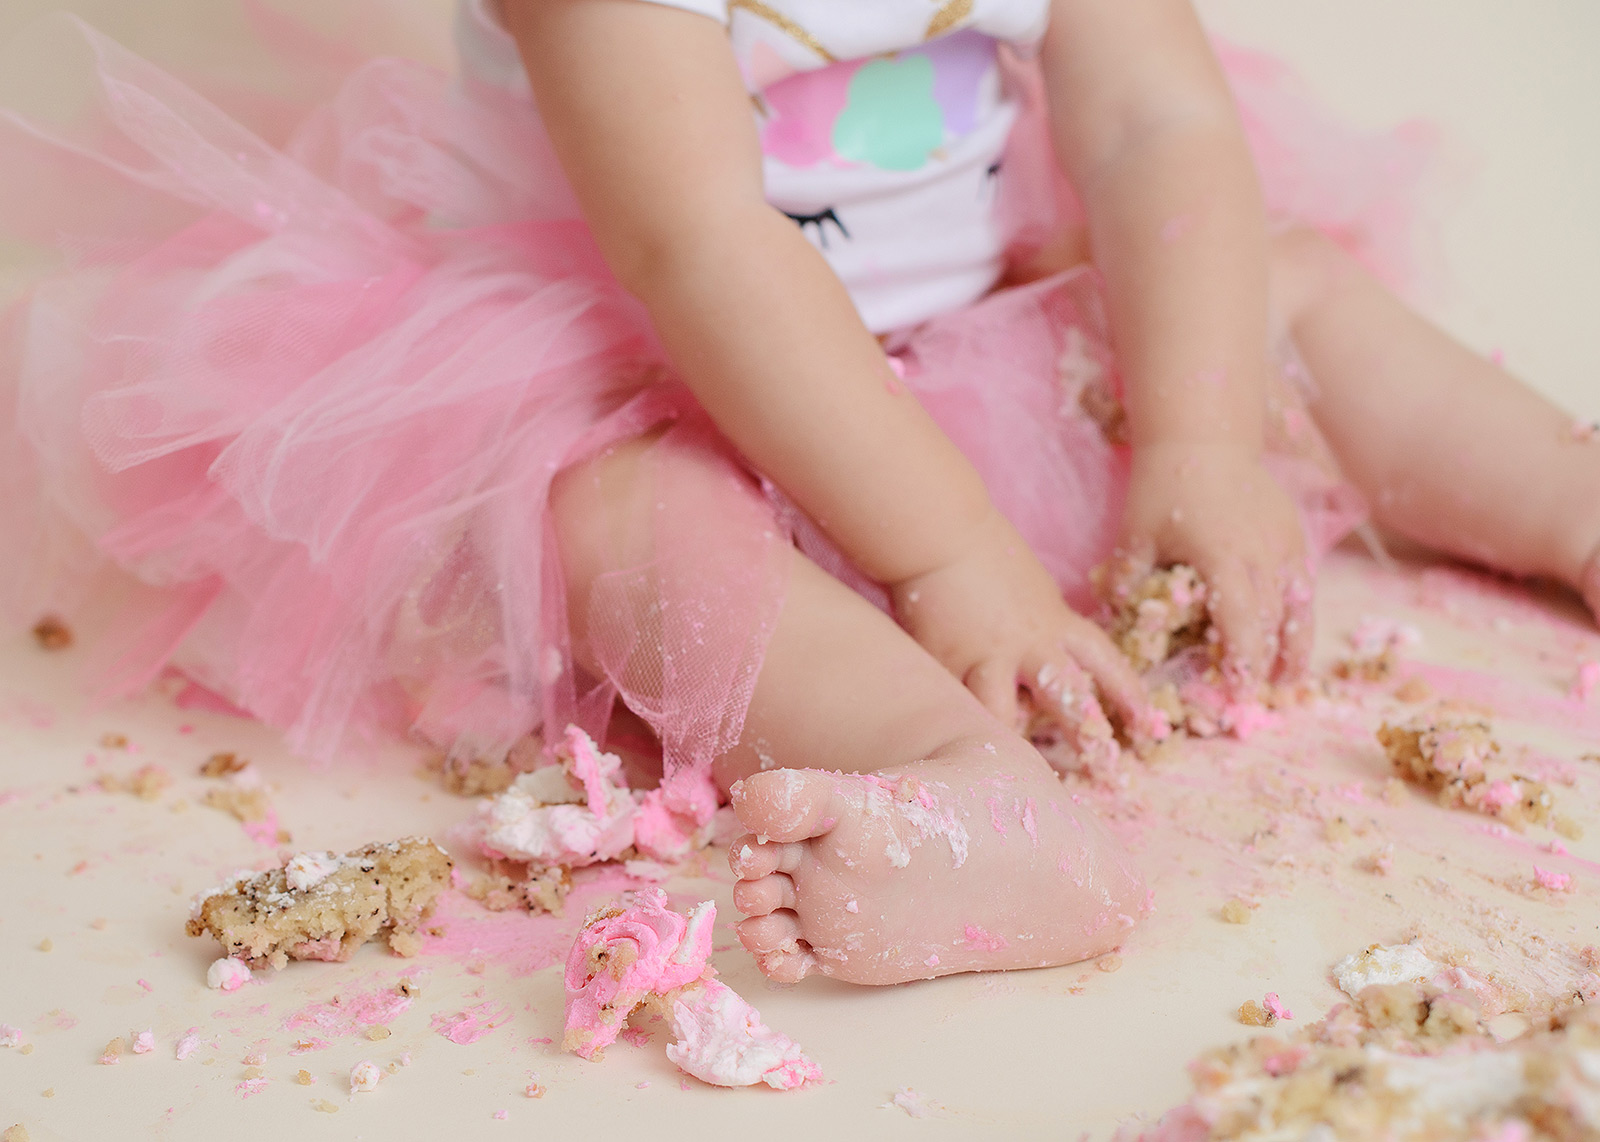 Pink Tutu and Pink Frosting on Baby Girl Toes